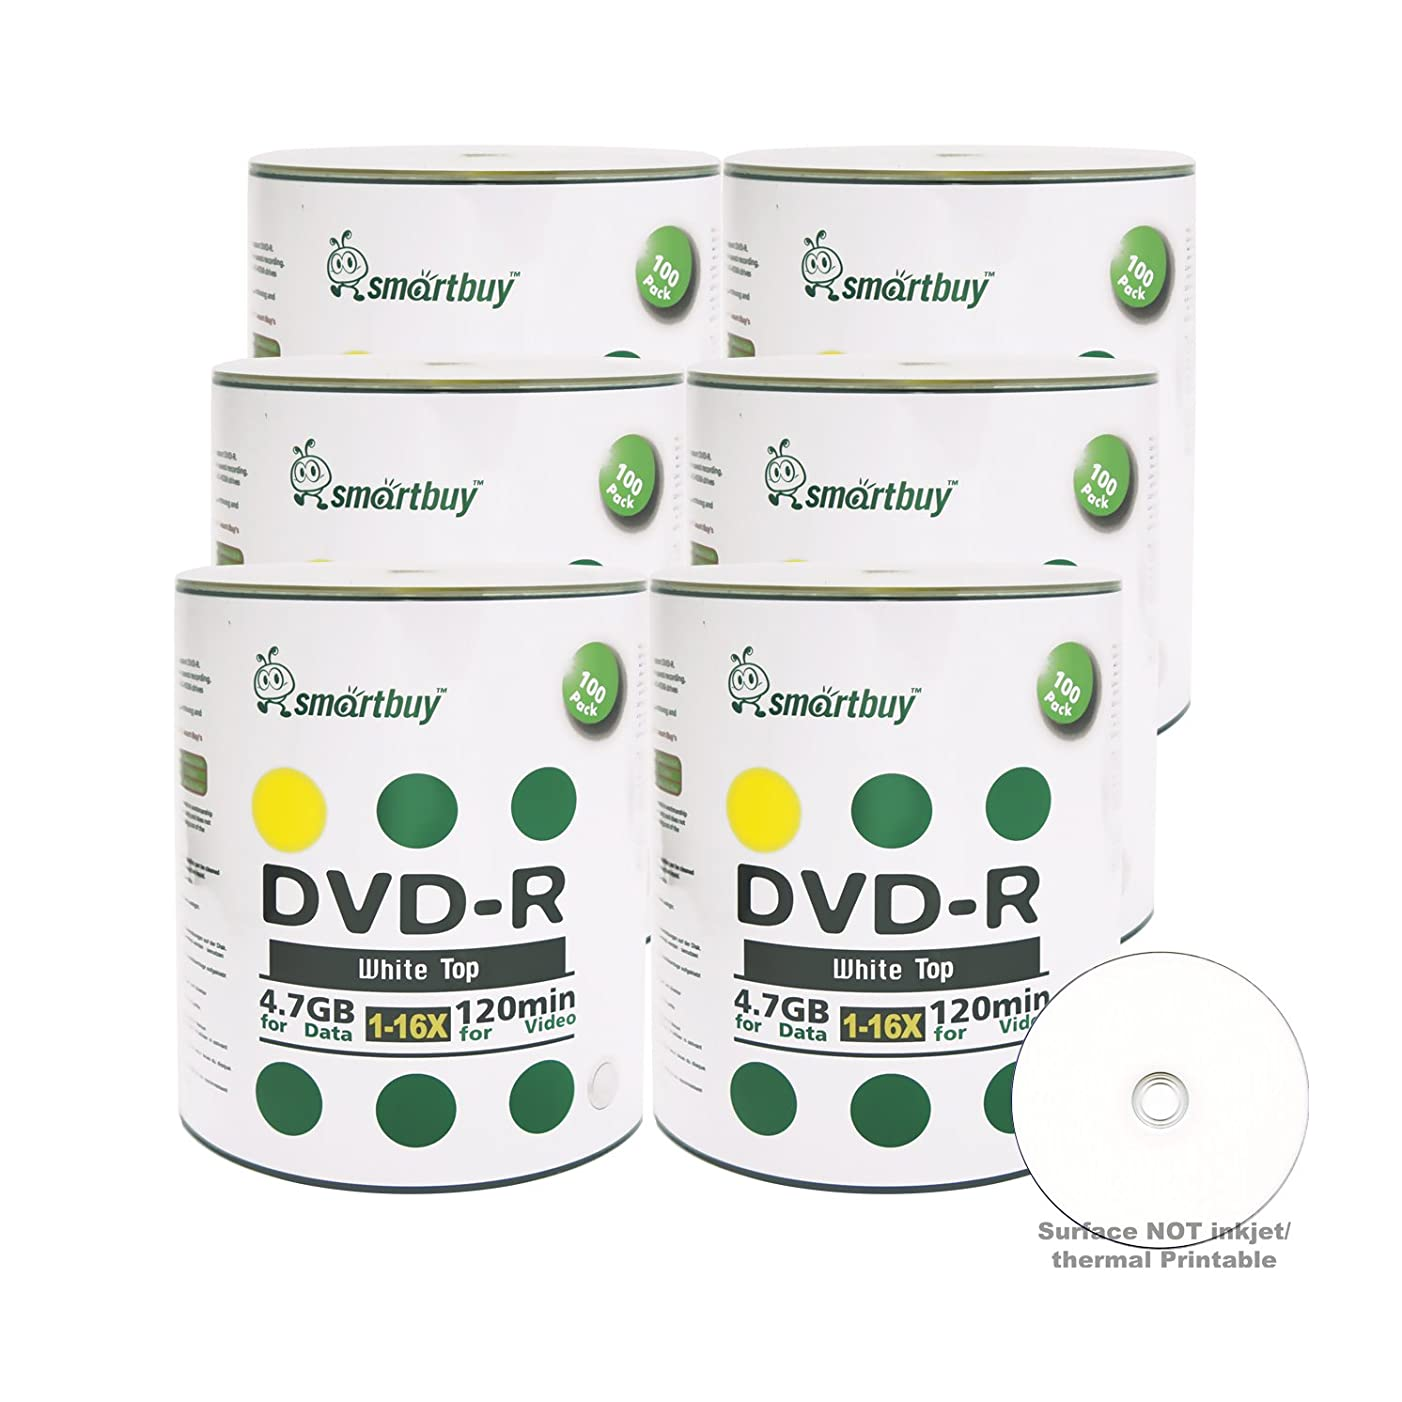 Smart Buy 600 Pack DVD-R 4.7gb 16x White Top Blank Data Video Movie Record Disc, 600 Disc 600pk